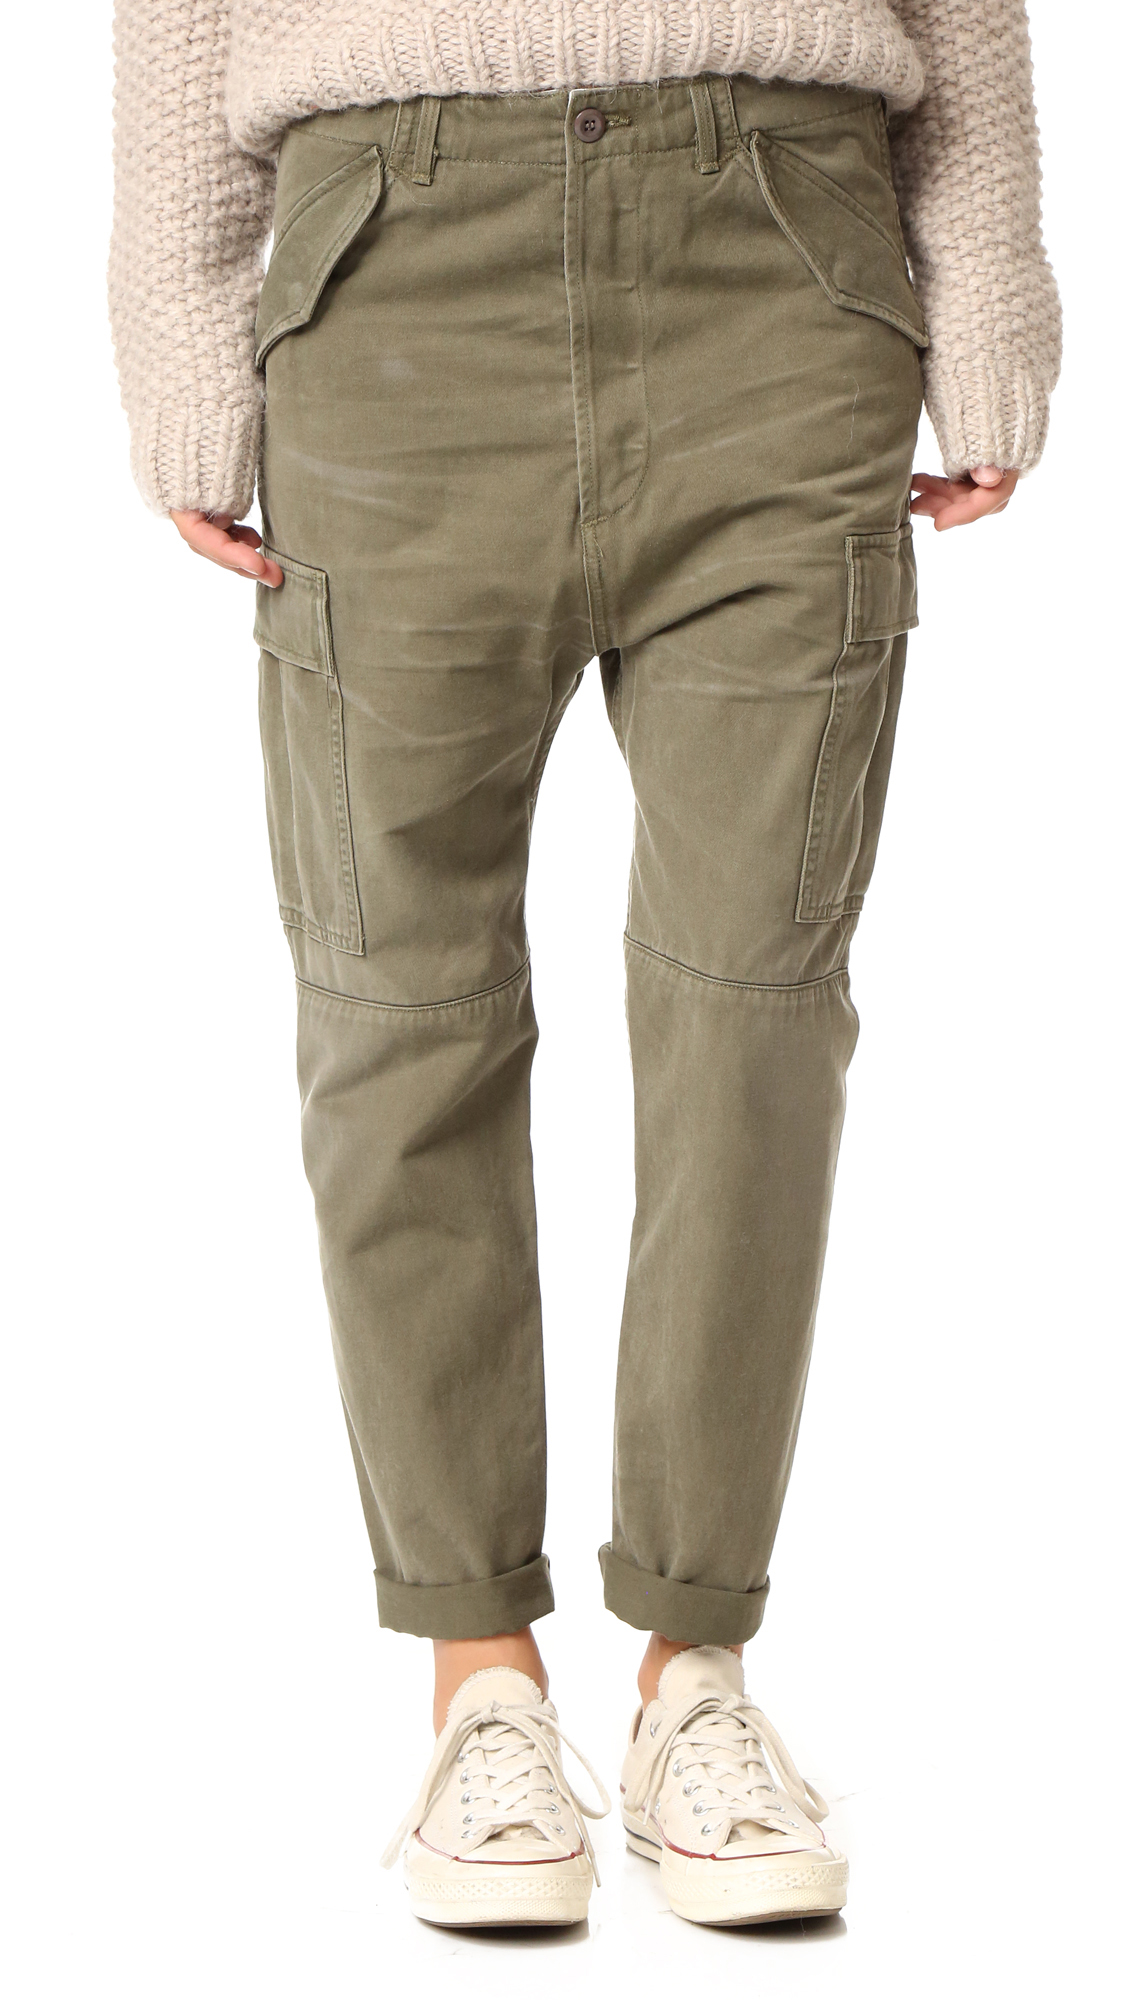 Citizens Of Humanity Ronja Cargo Pants - Olive at Shopbop